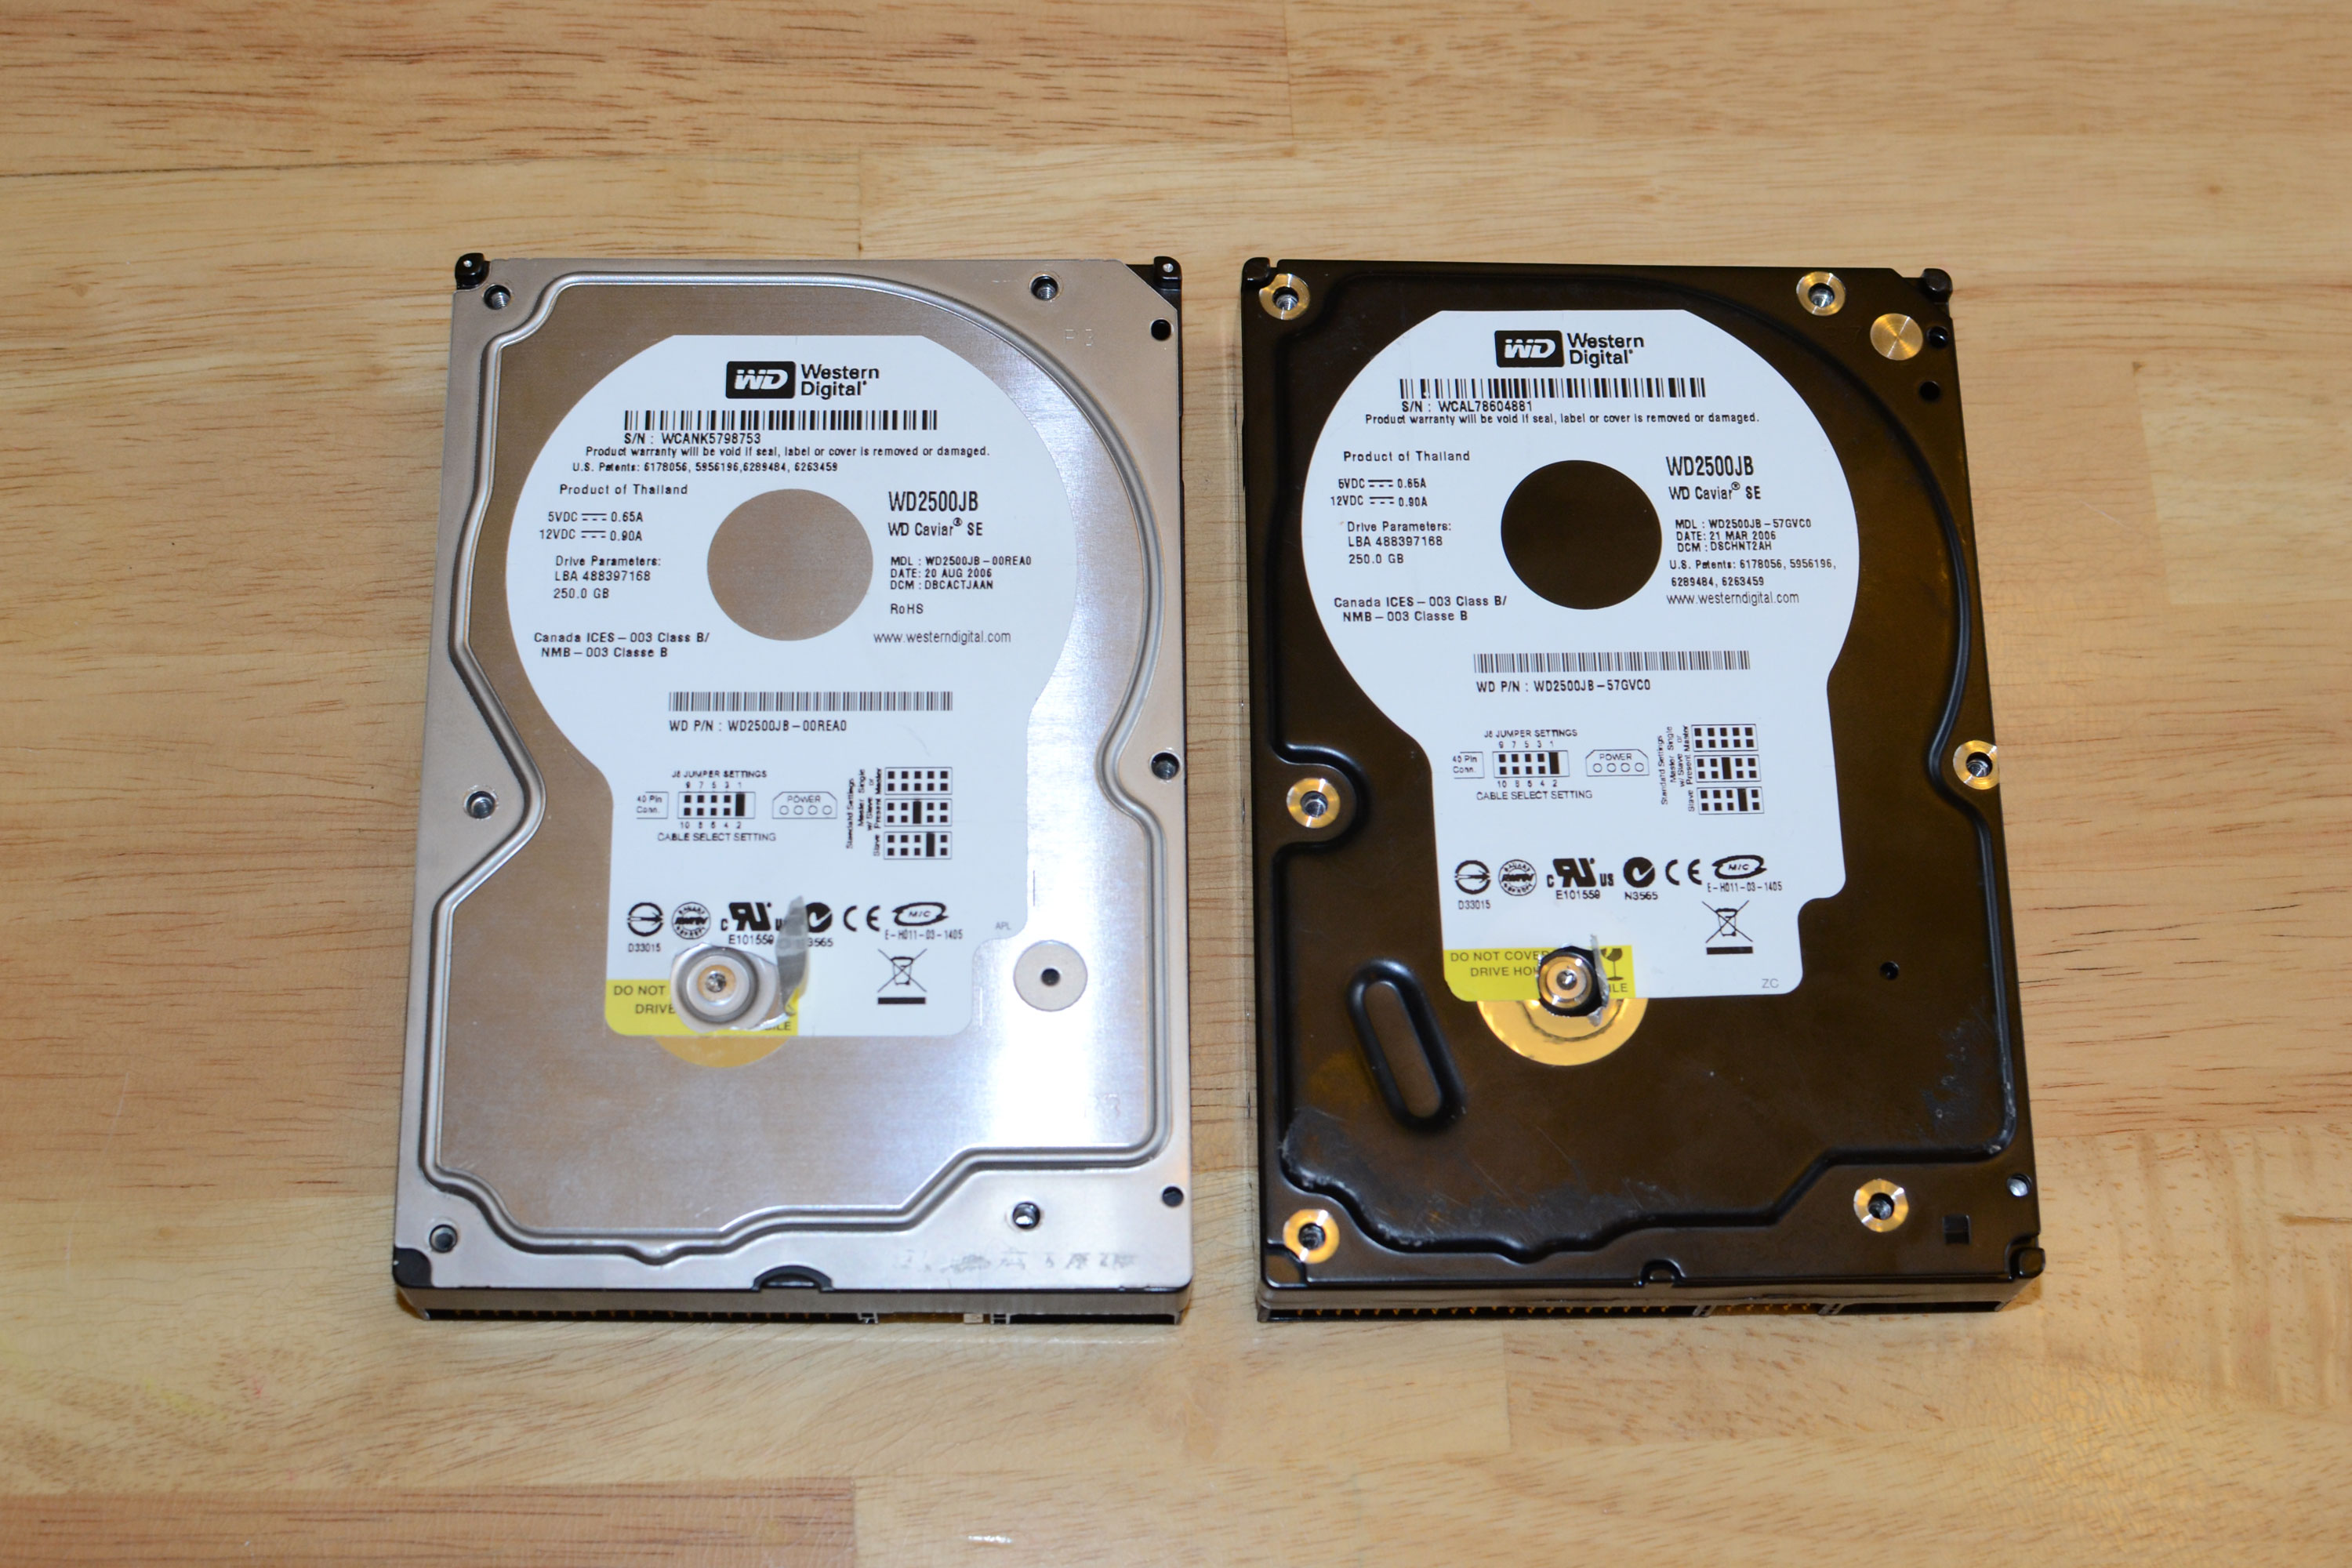 Hardware tricks: how to not fix a crashed hard drive